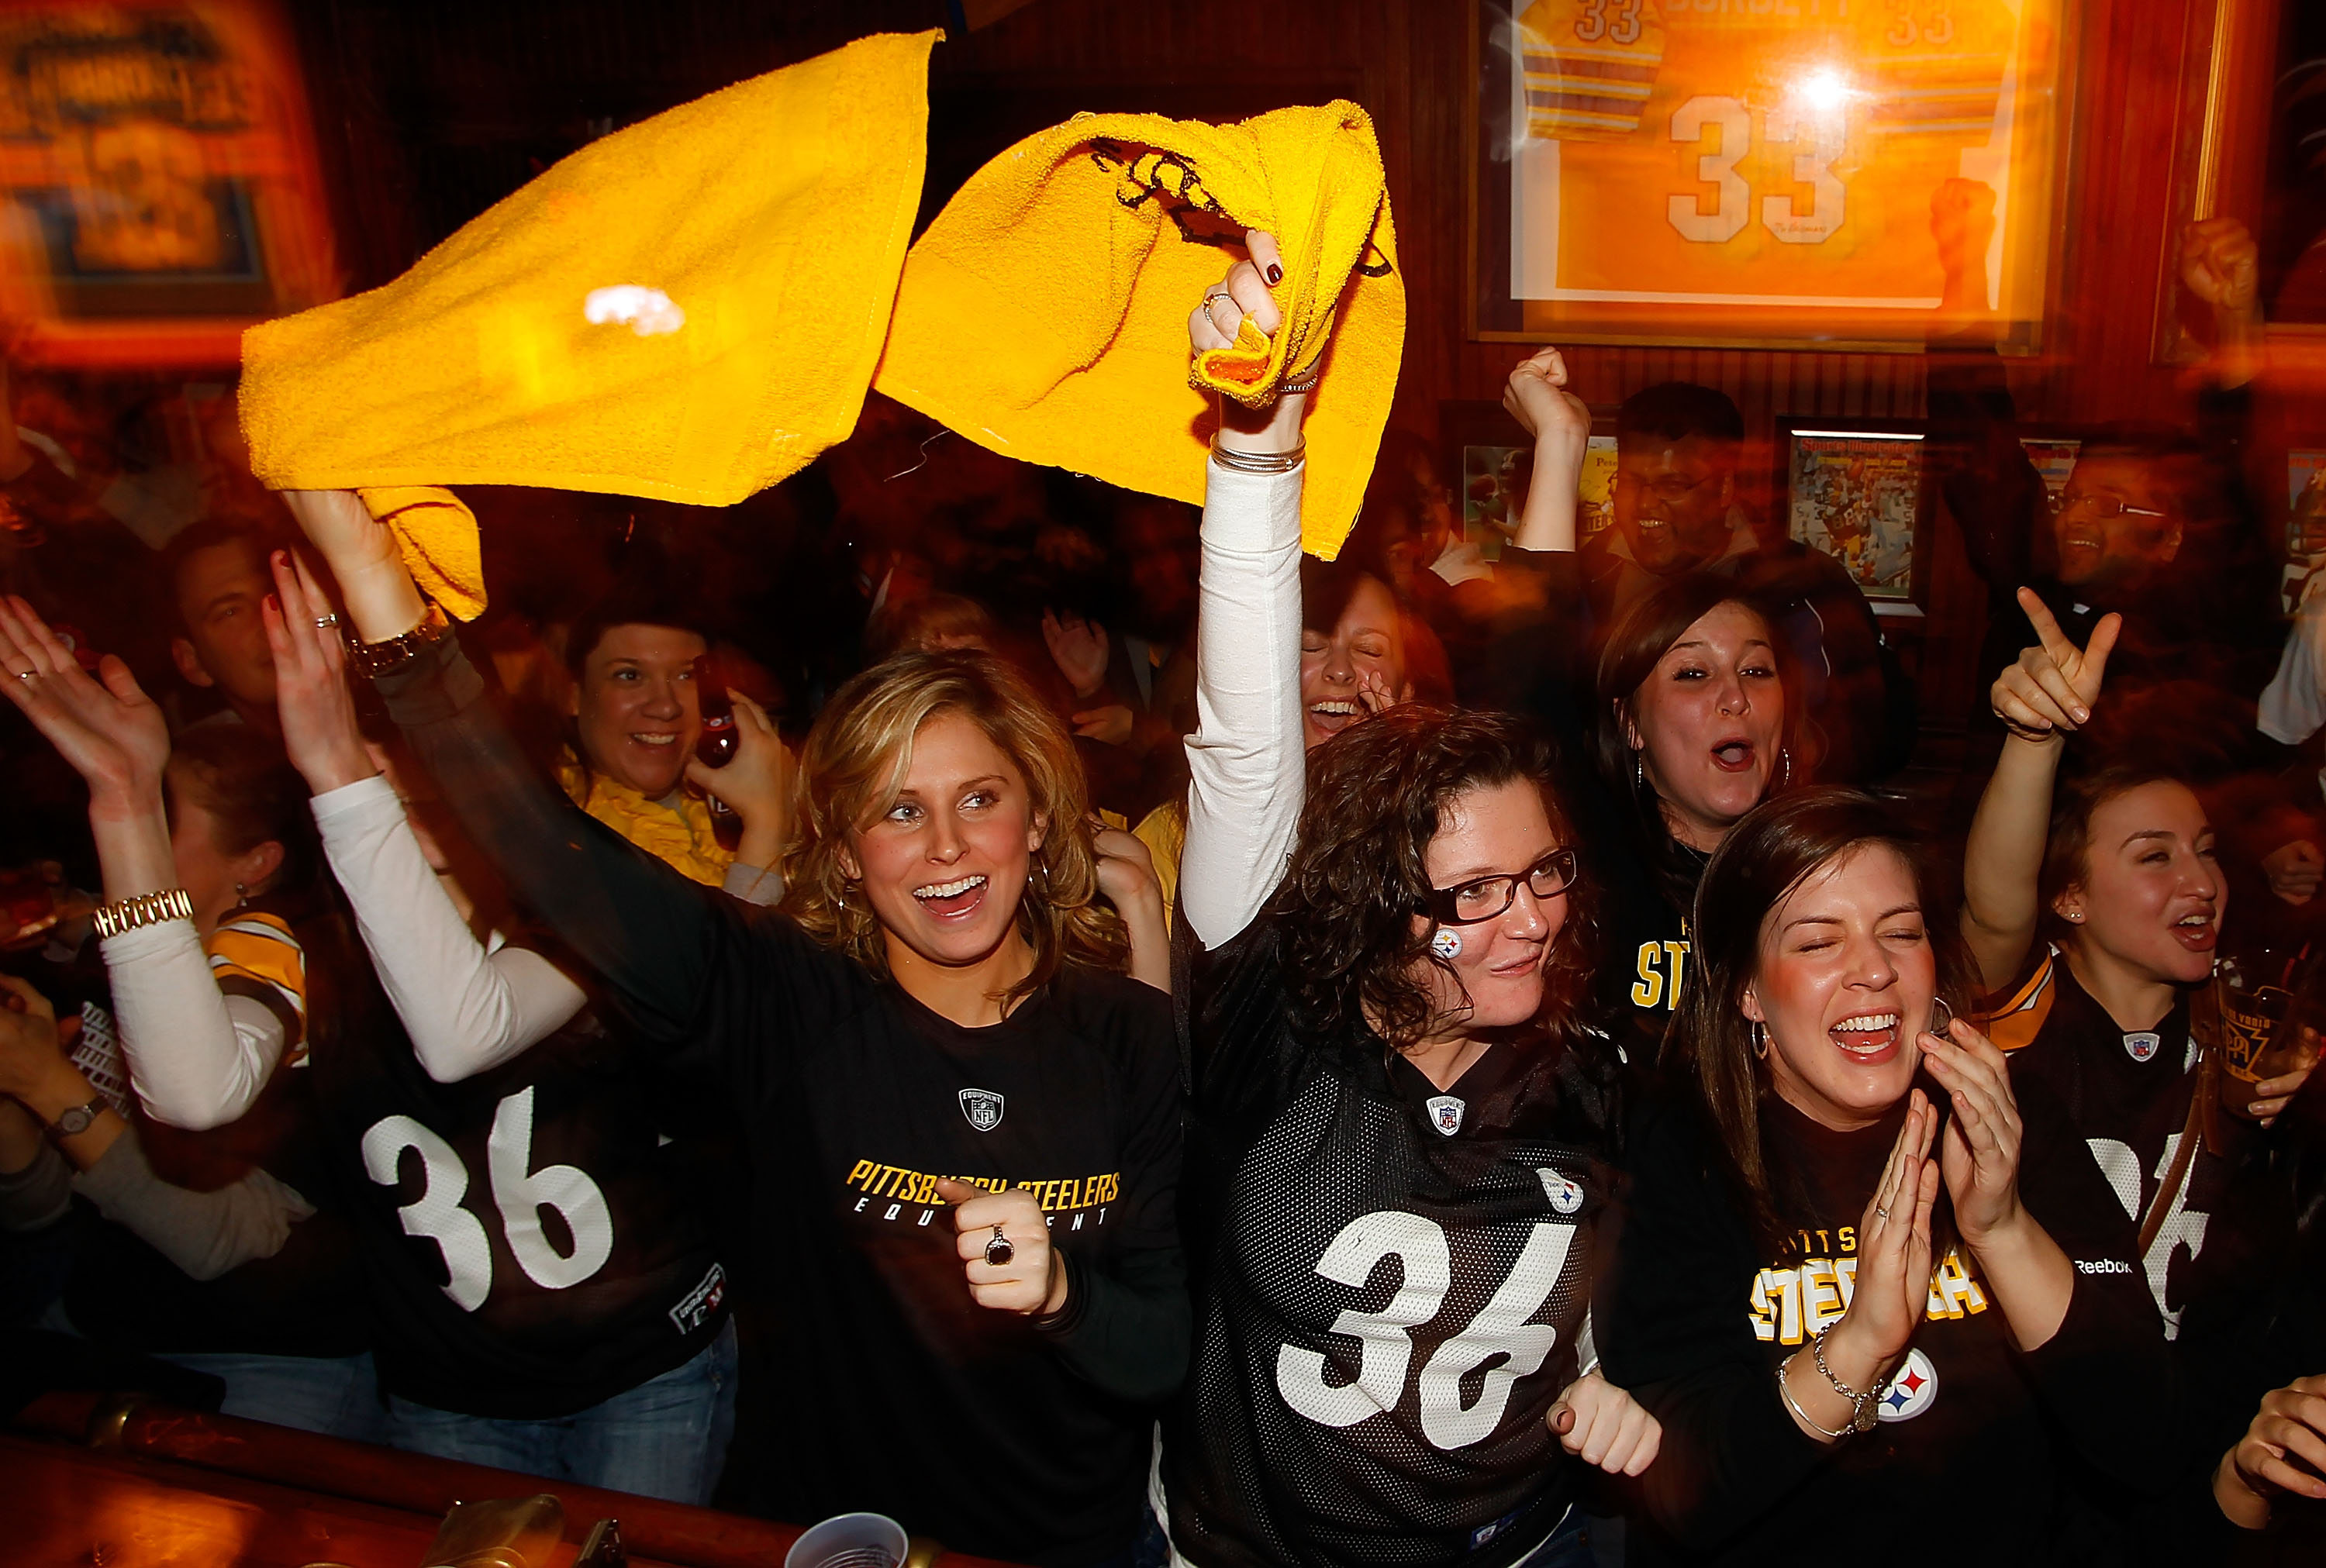 PITTSBURGH - FEBRUARY 06:  Pittsburgh Steelers fans watch Super Bowl XLV on February 6, 2011 at Peter's Pub in the Oakland neighborhood of Pittsburgh, Pennsylvania.  (Photo by Jared Wickerham/Getty Images)